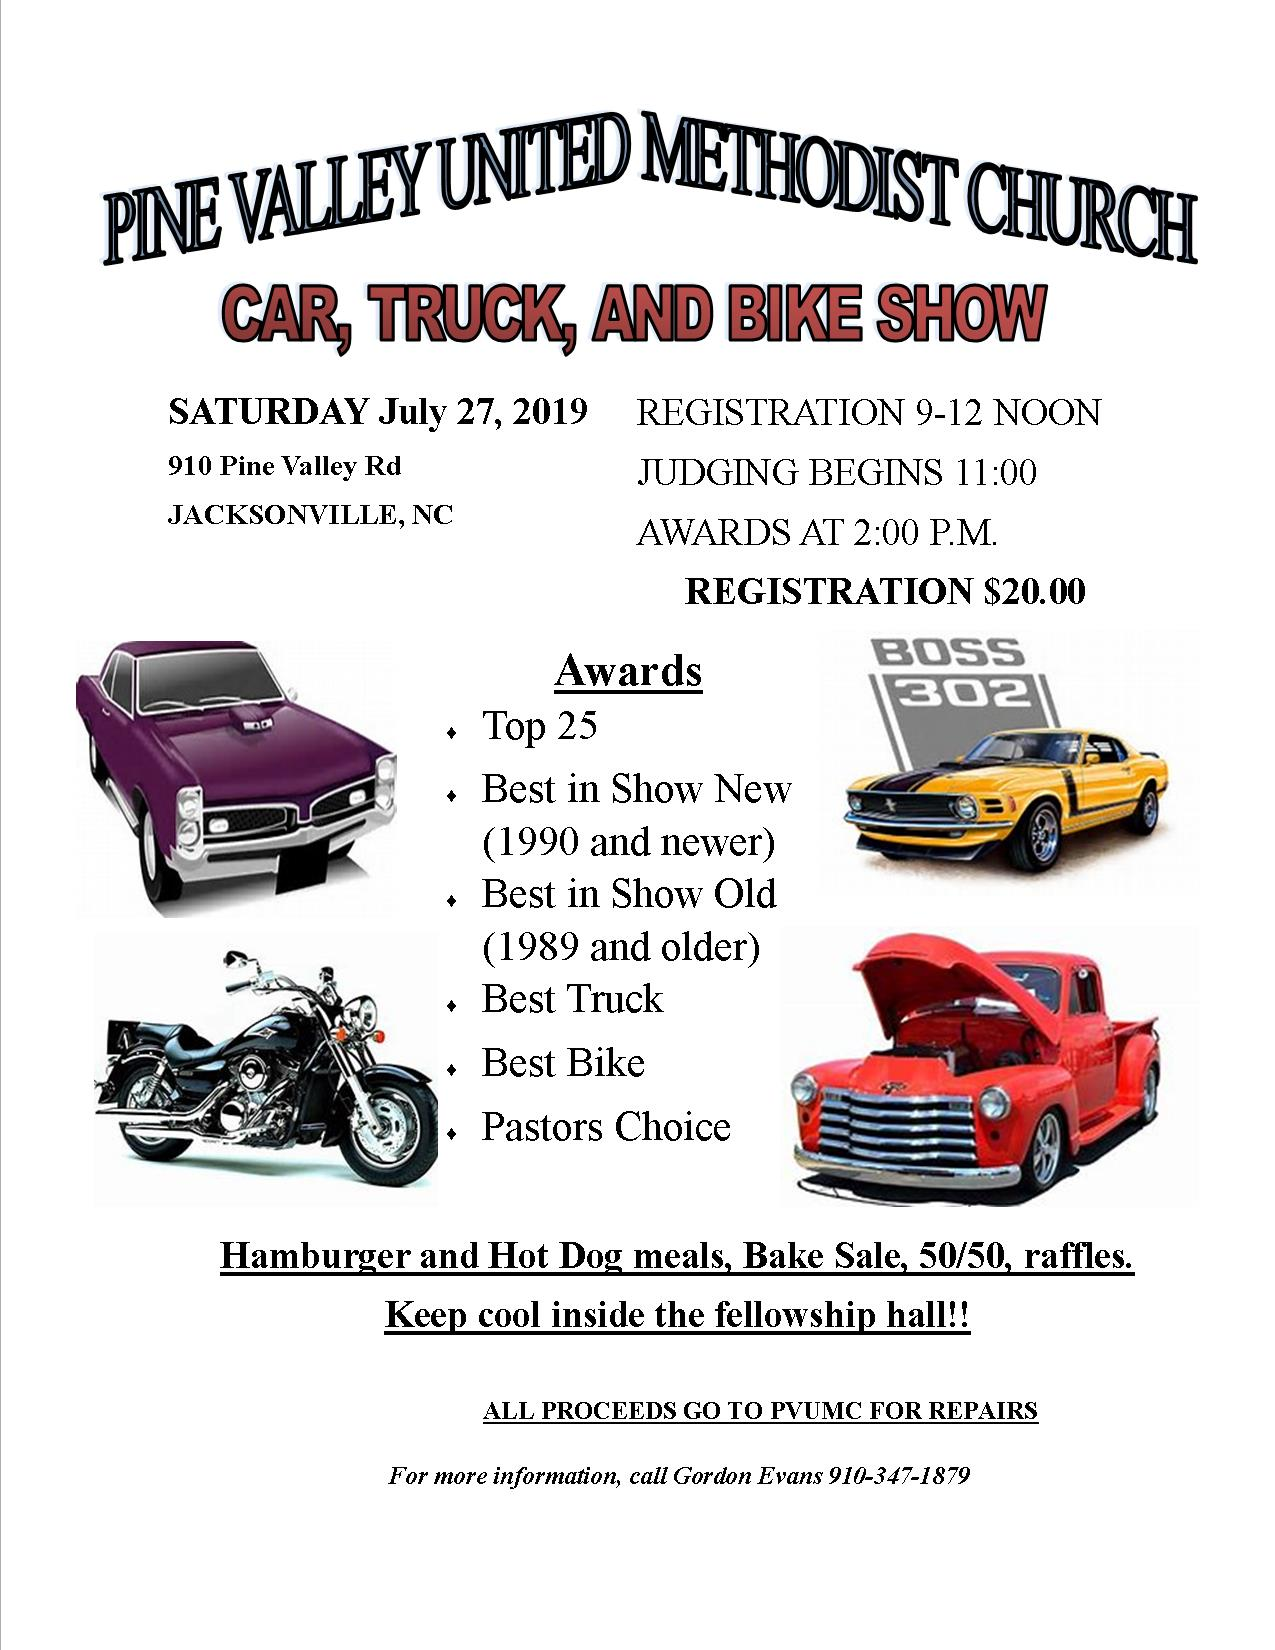 UMM - Car, Truck, and Bike show - Pine Valley United ...